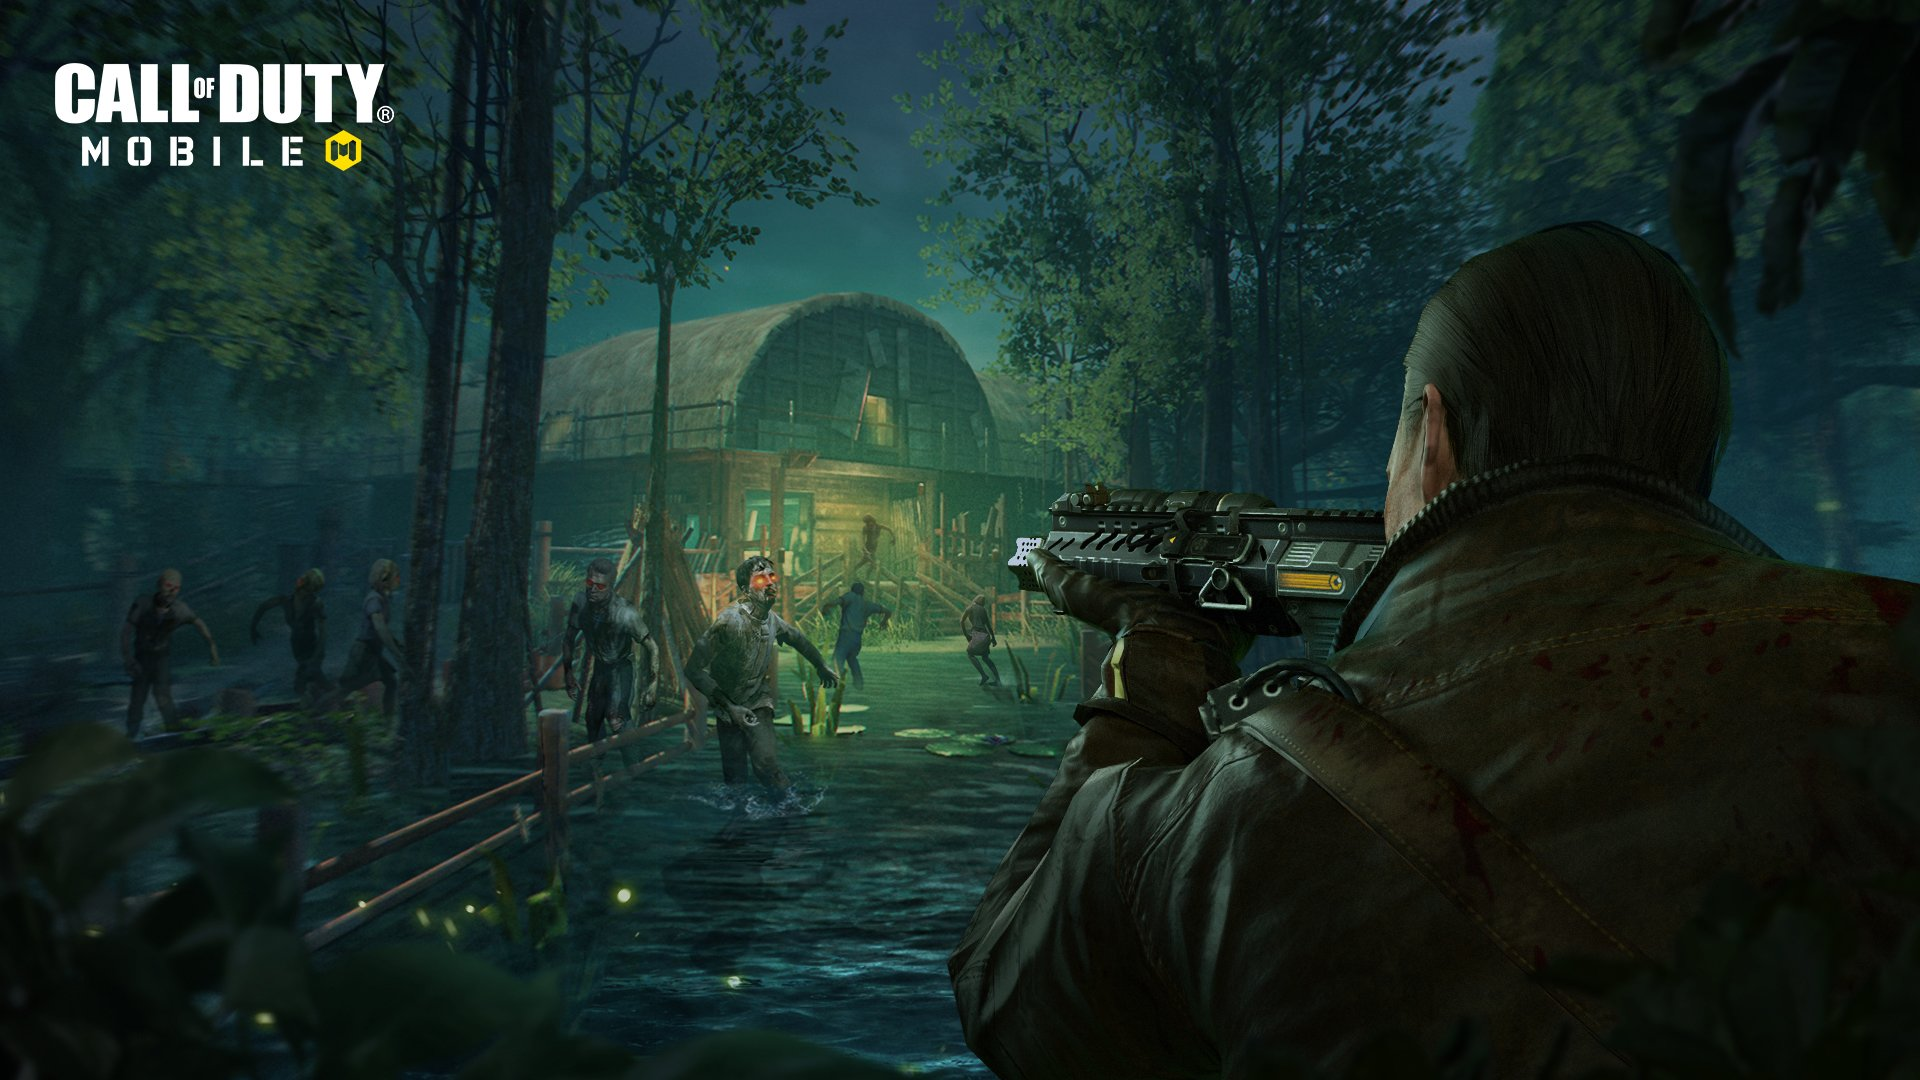 Call of Duty Zombie update is on its way to iOS